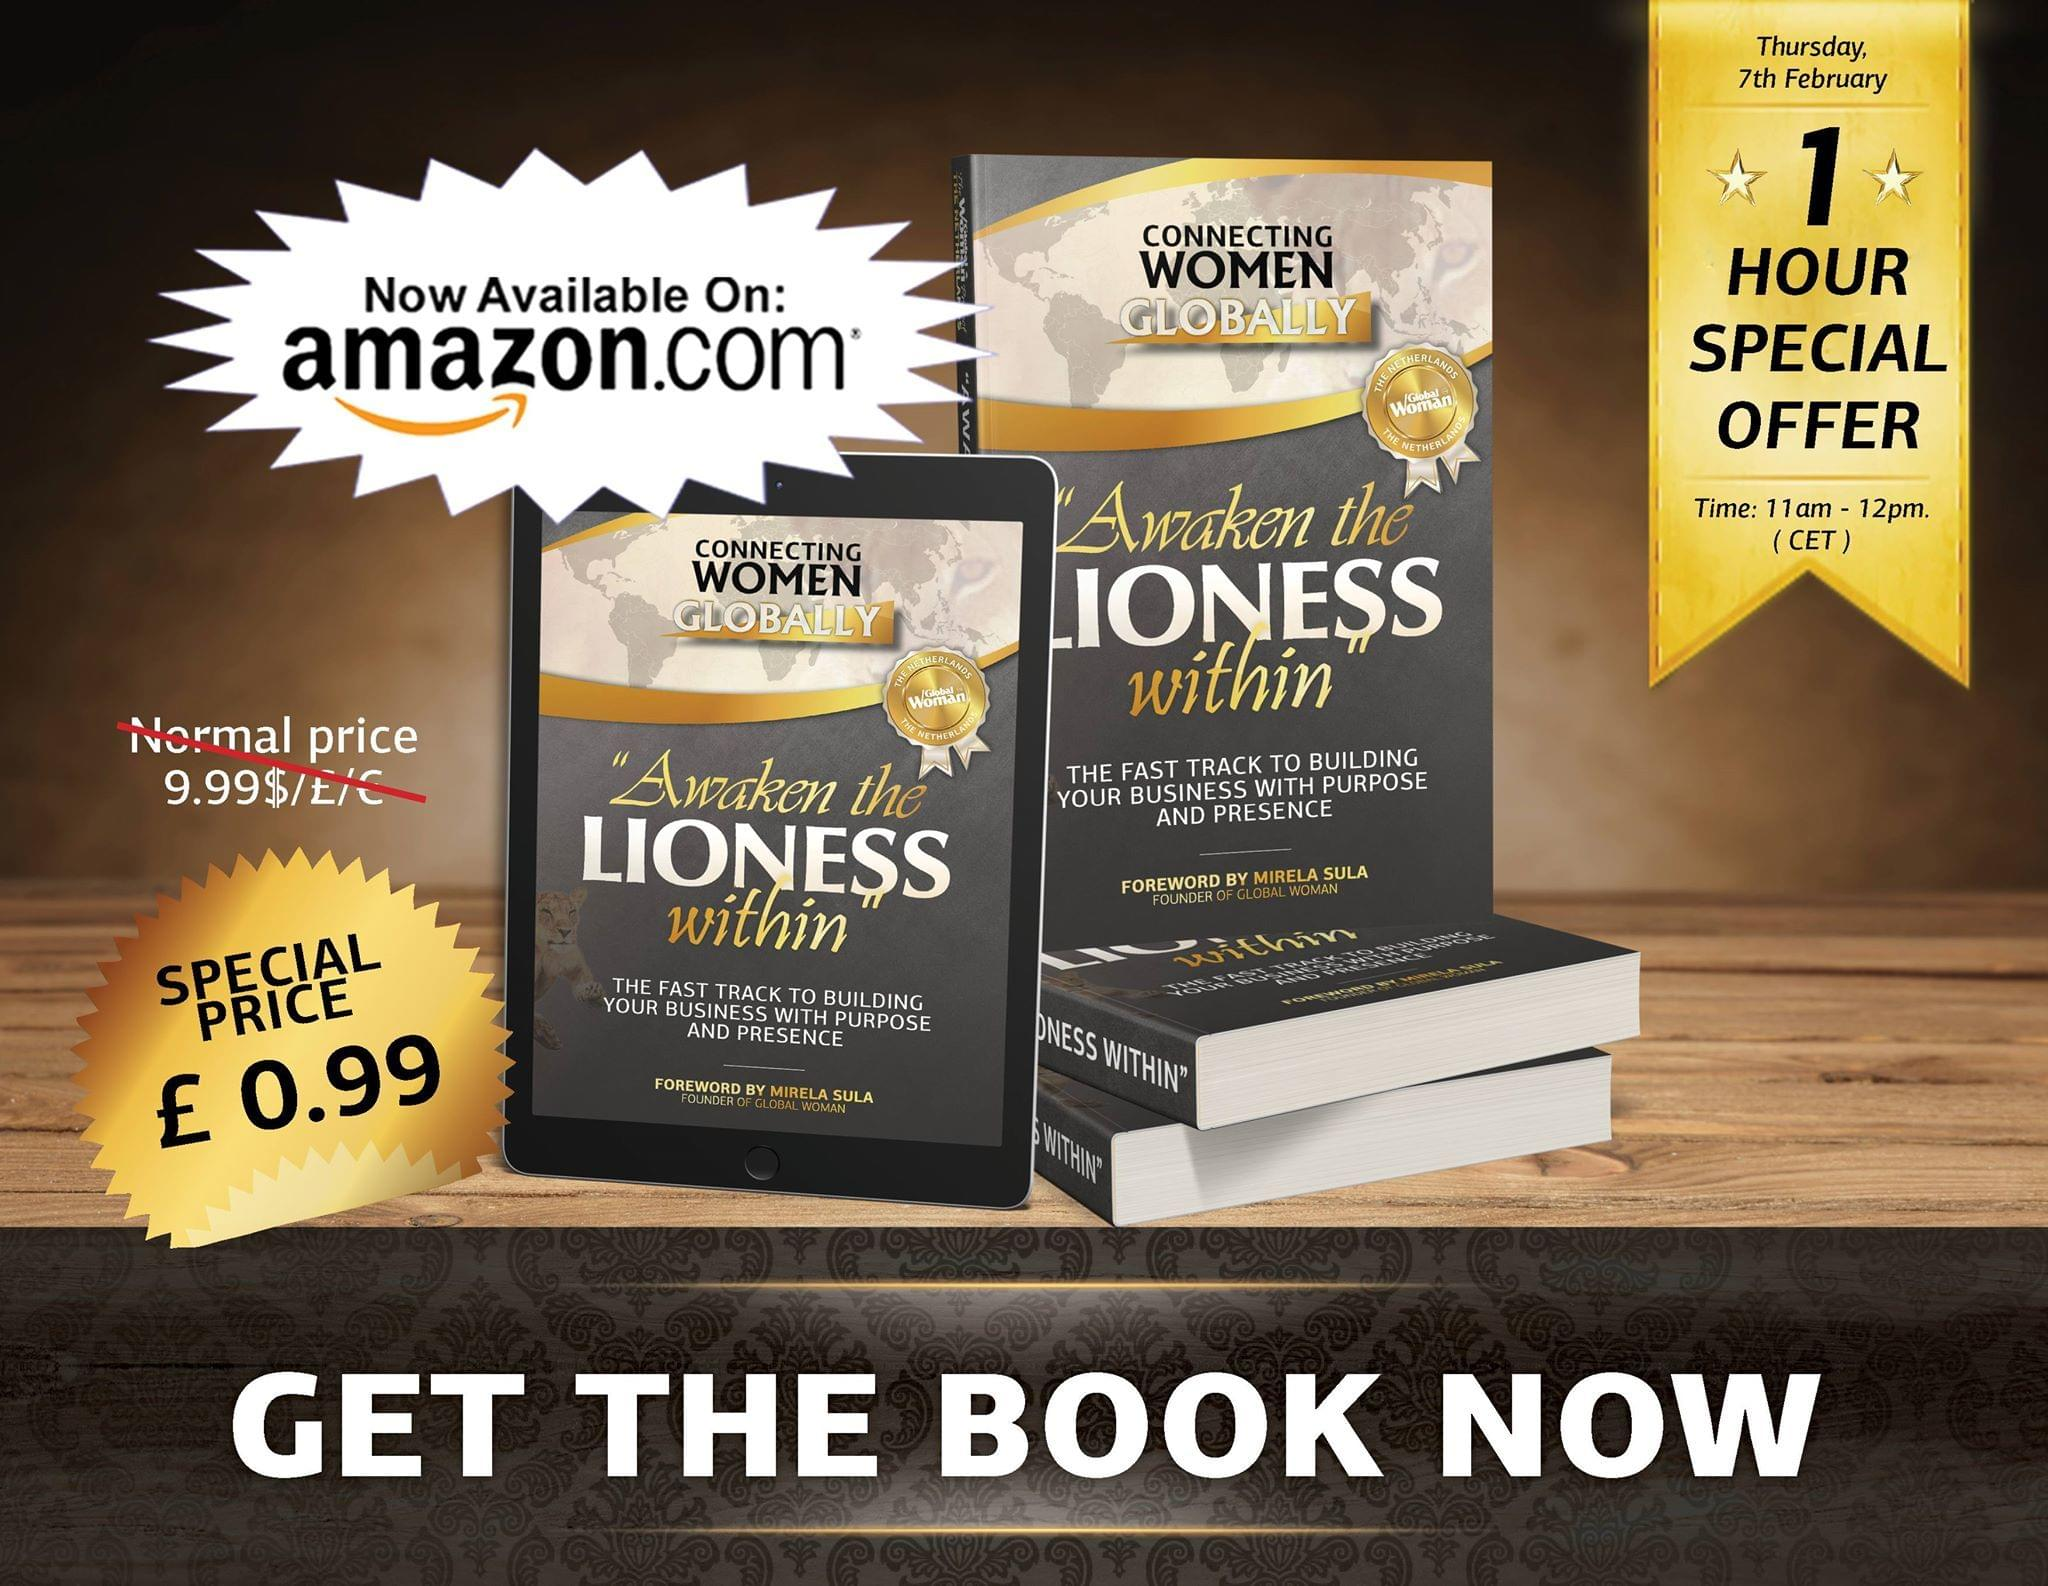 Awaken the Lioness Within